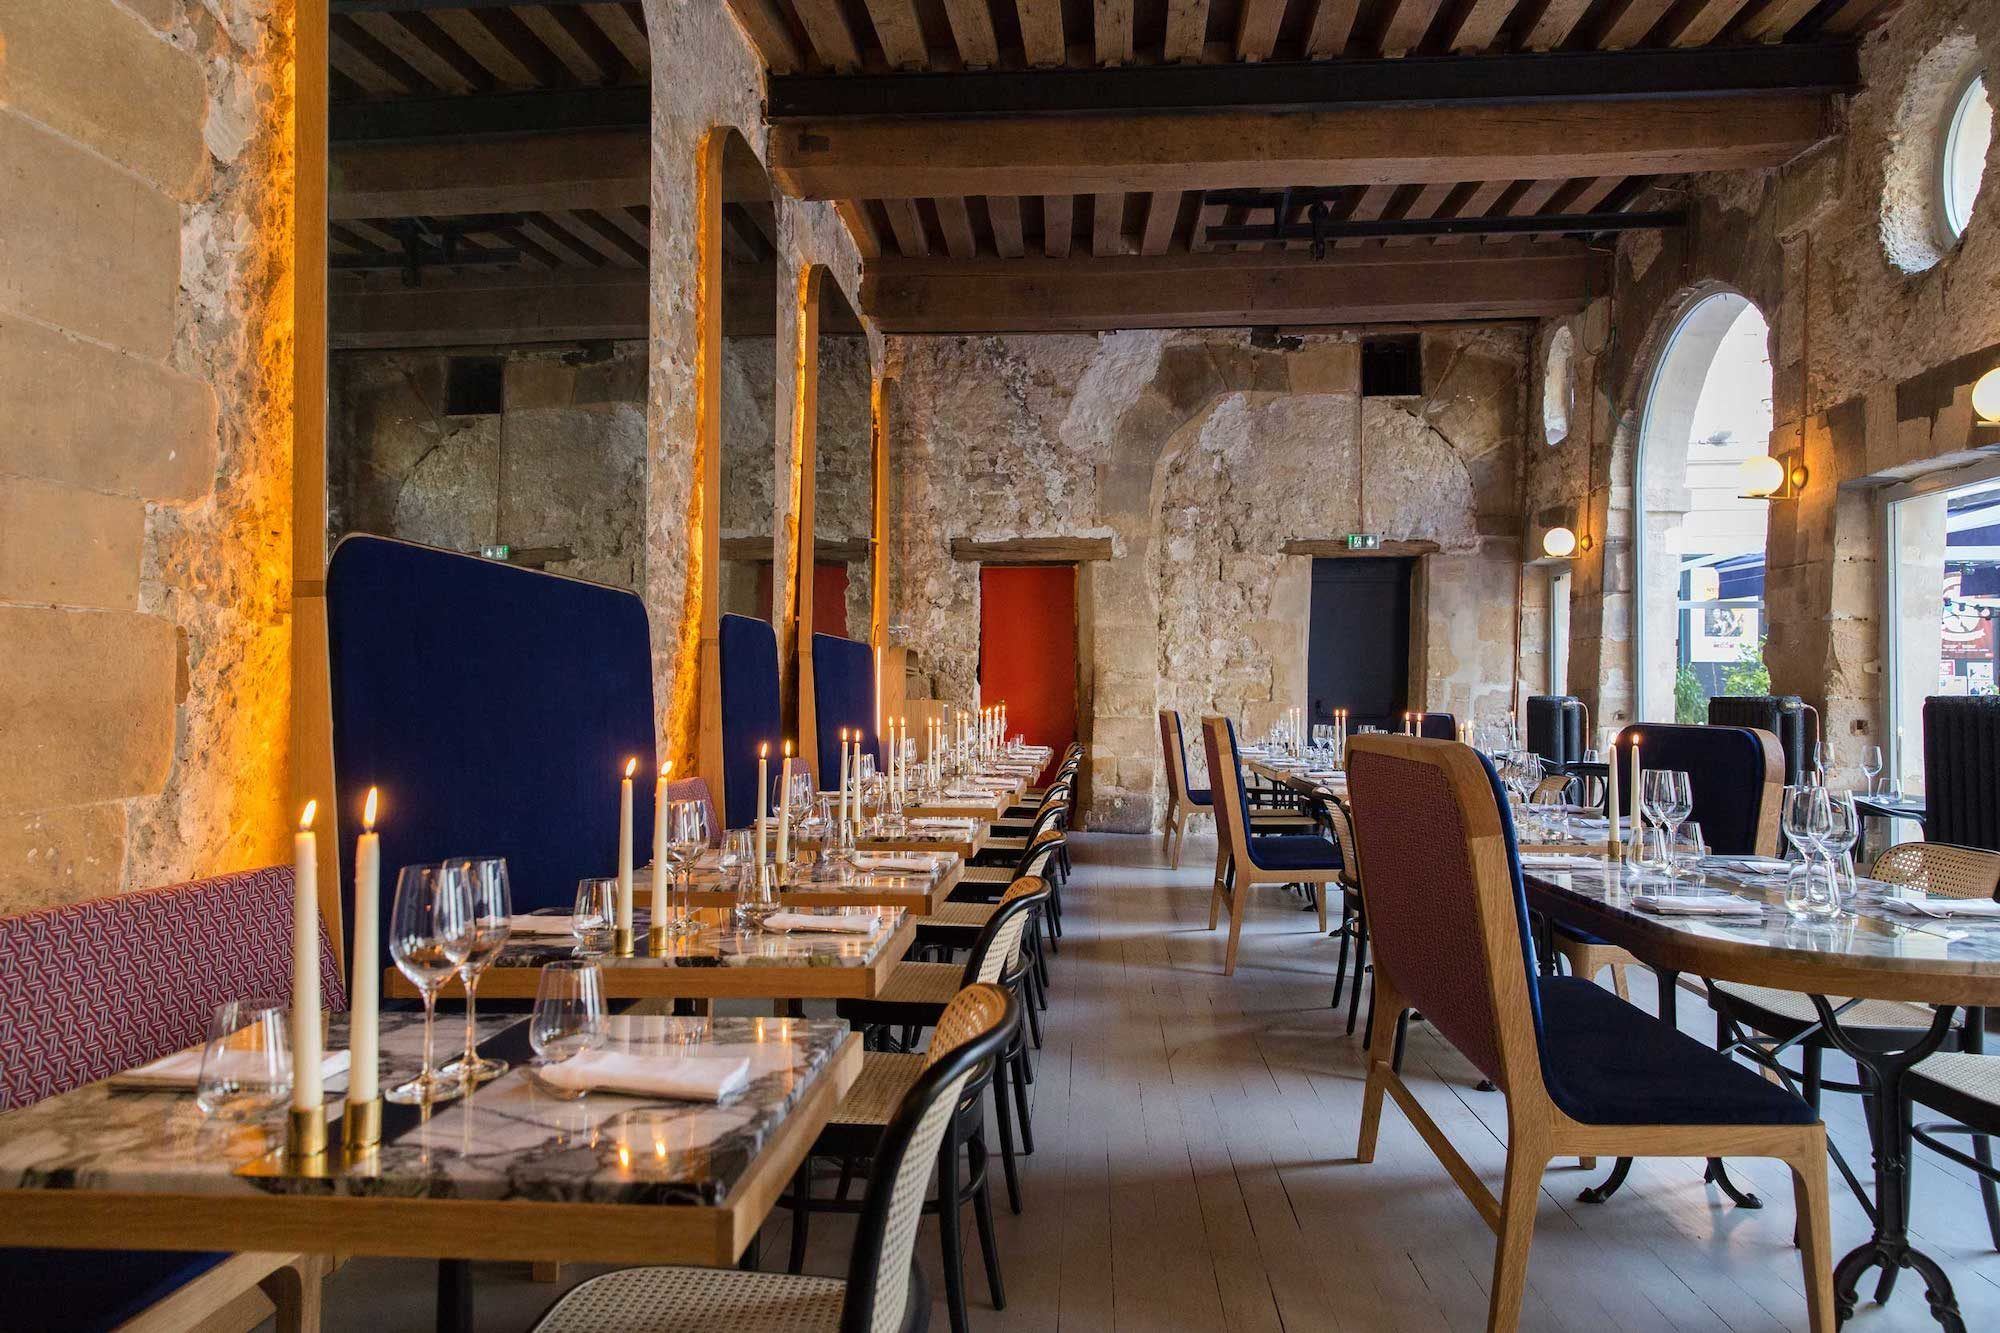 Grandcoeur restaurant in the Marais, Paris, comes with cozy exposed brick interiors and lots of candle light.